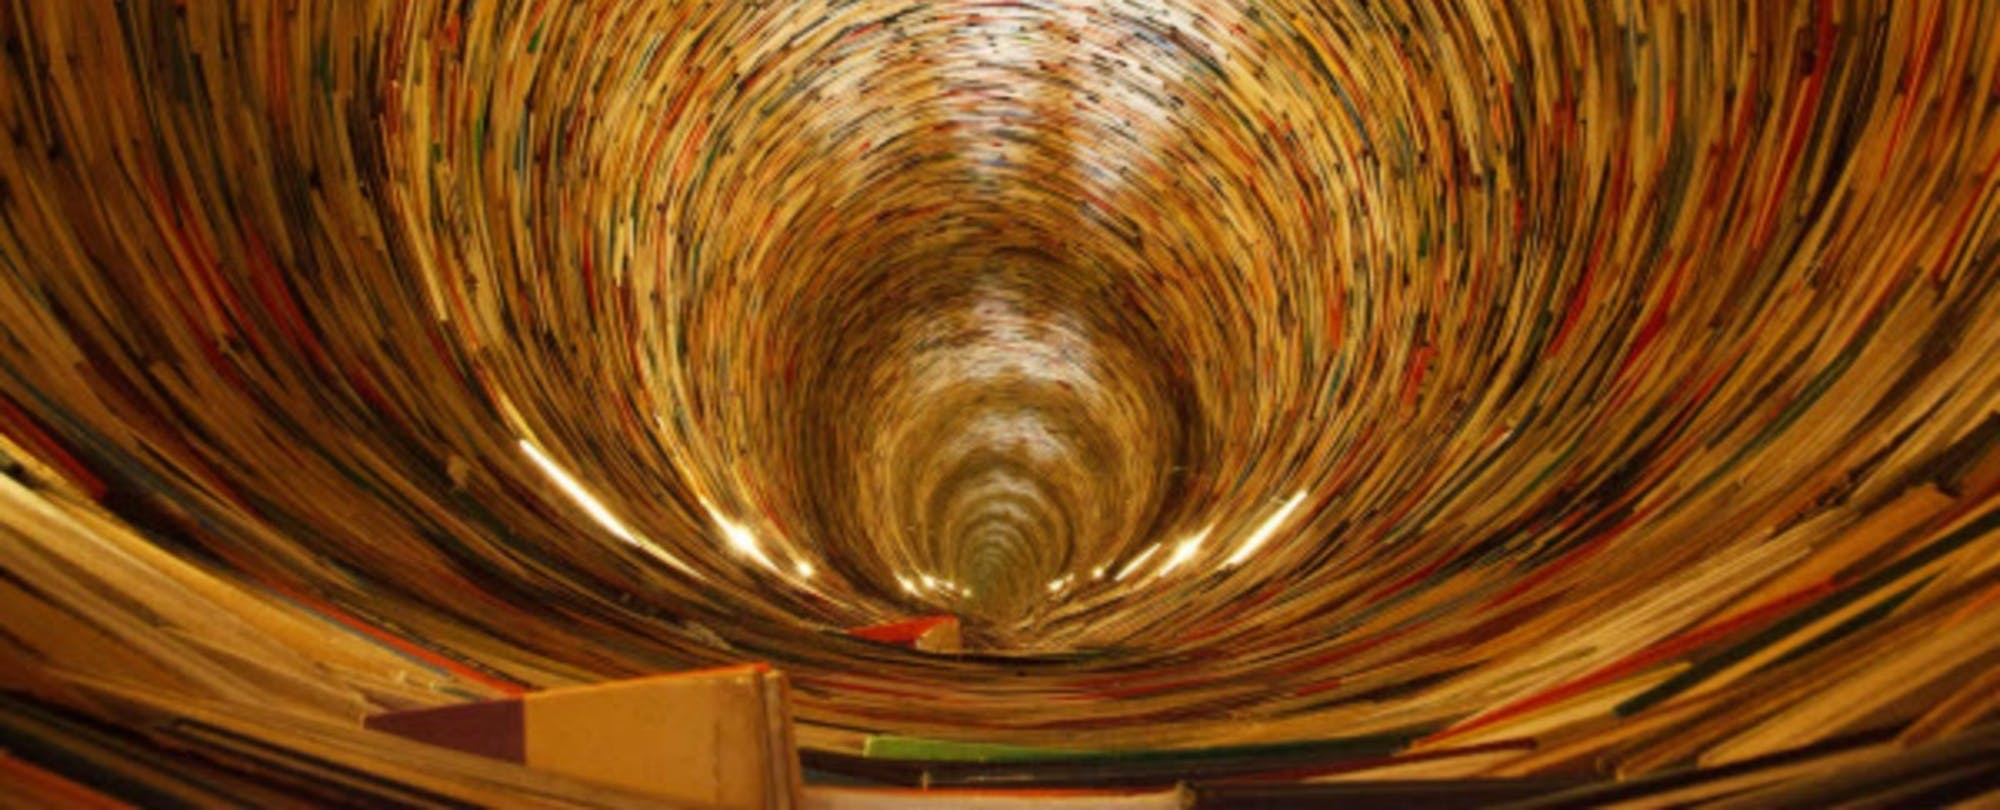 What Happened to Google's Effort to Scan Millions of University Library Books?